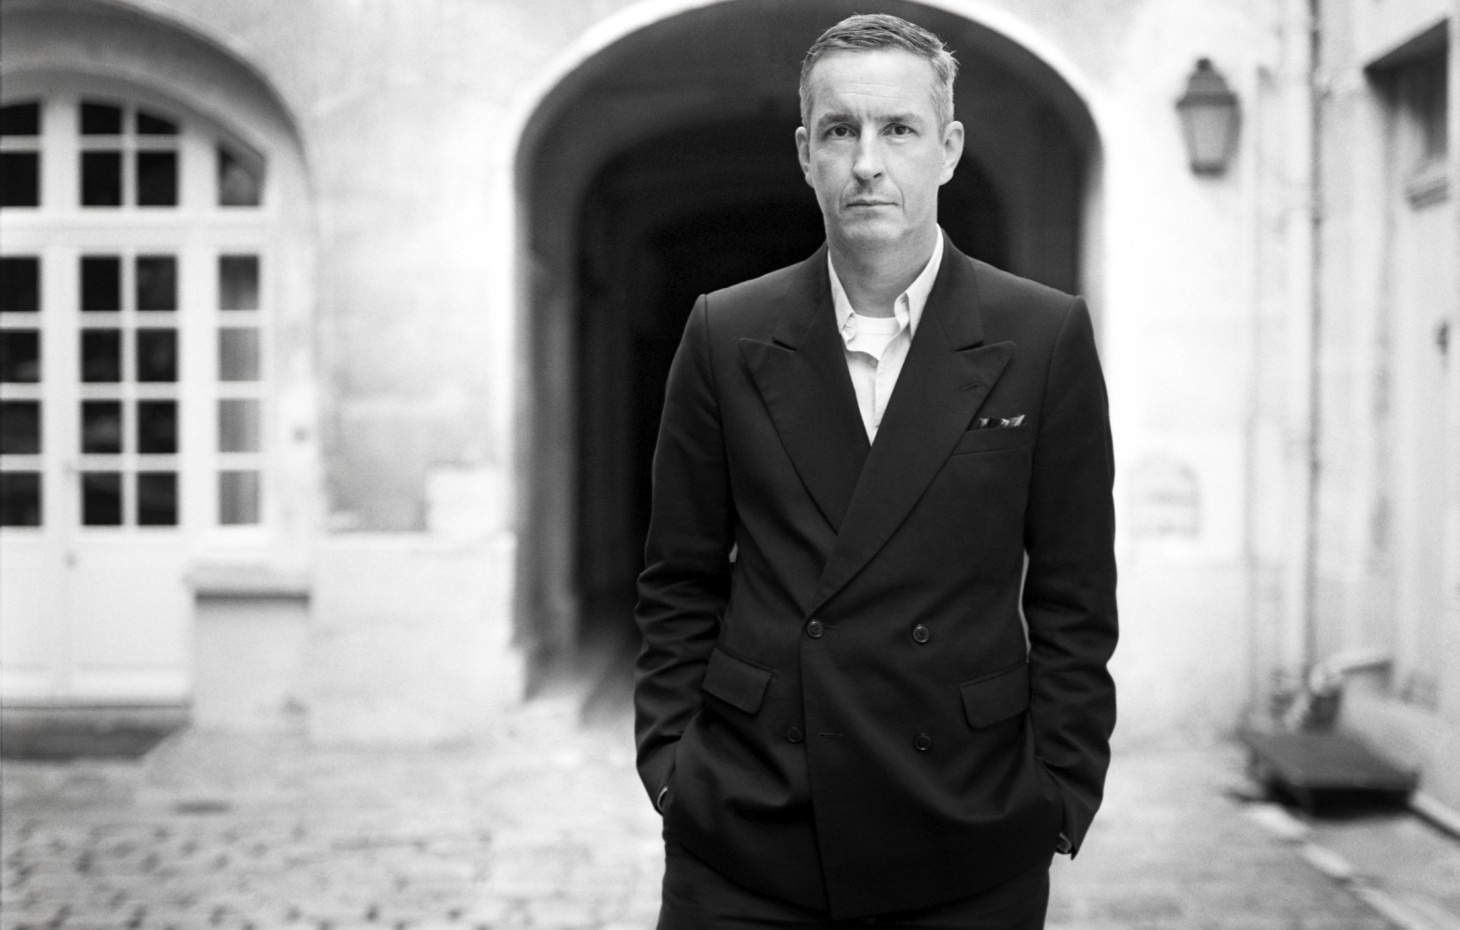 Dries Van Noten at the New Yorker Festival - StyleZeitgeist, New Yorker Festival, New Yorker, Fashion, Events, dries van noten, Belgian Fashion